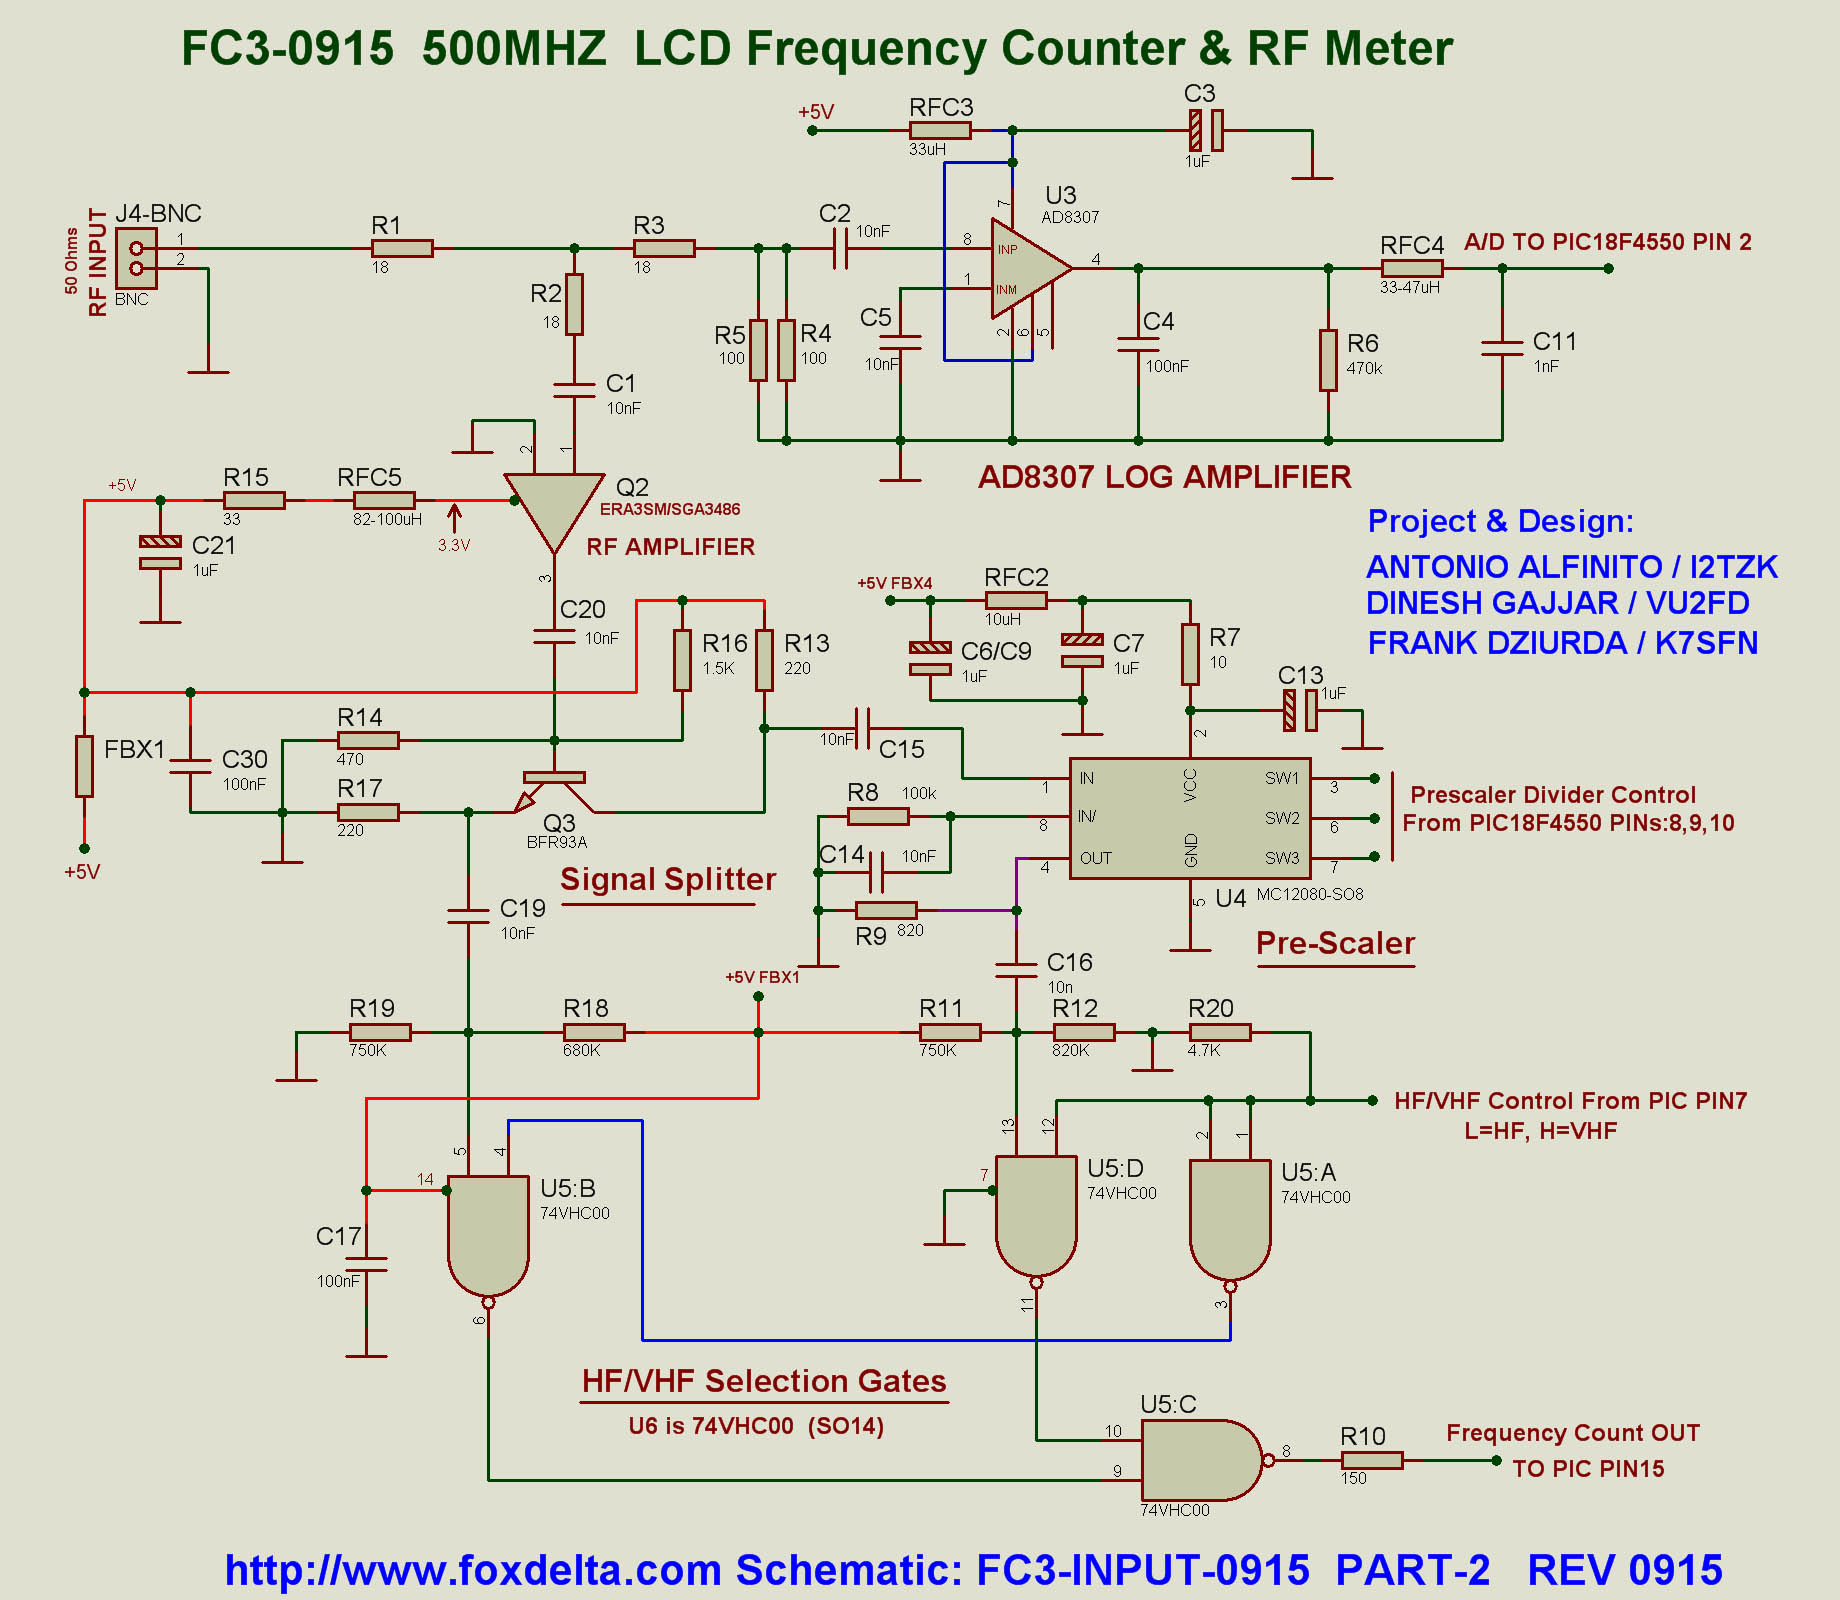 Fc3 Pic18f4550 50 500mhz Frequency Counter Rf Power Meter Using Ad8307 0 Pic16f876 Input